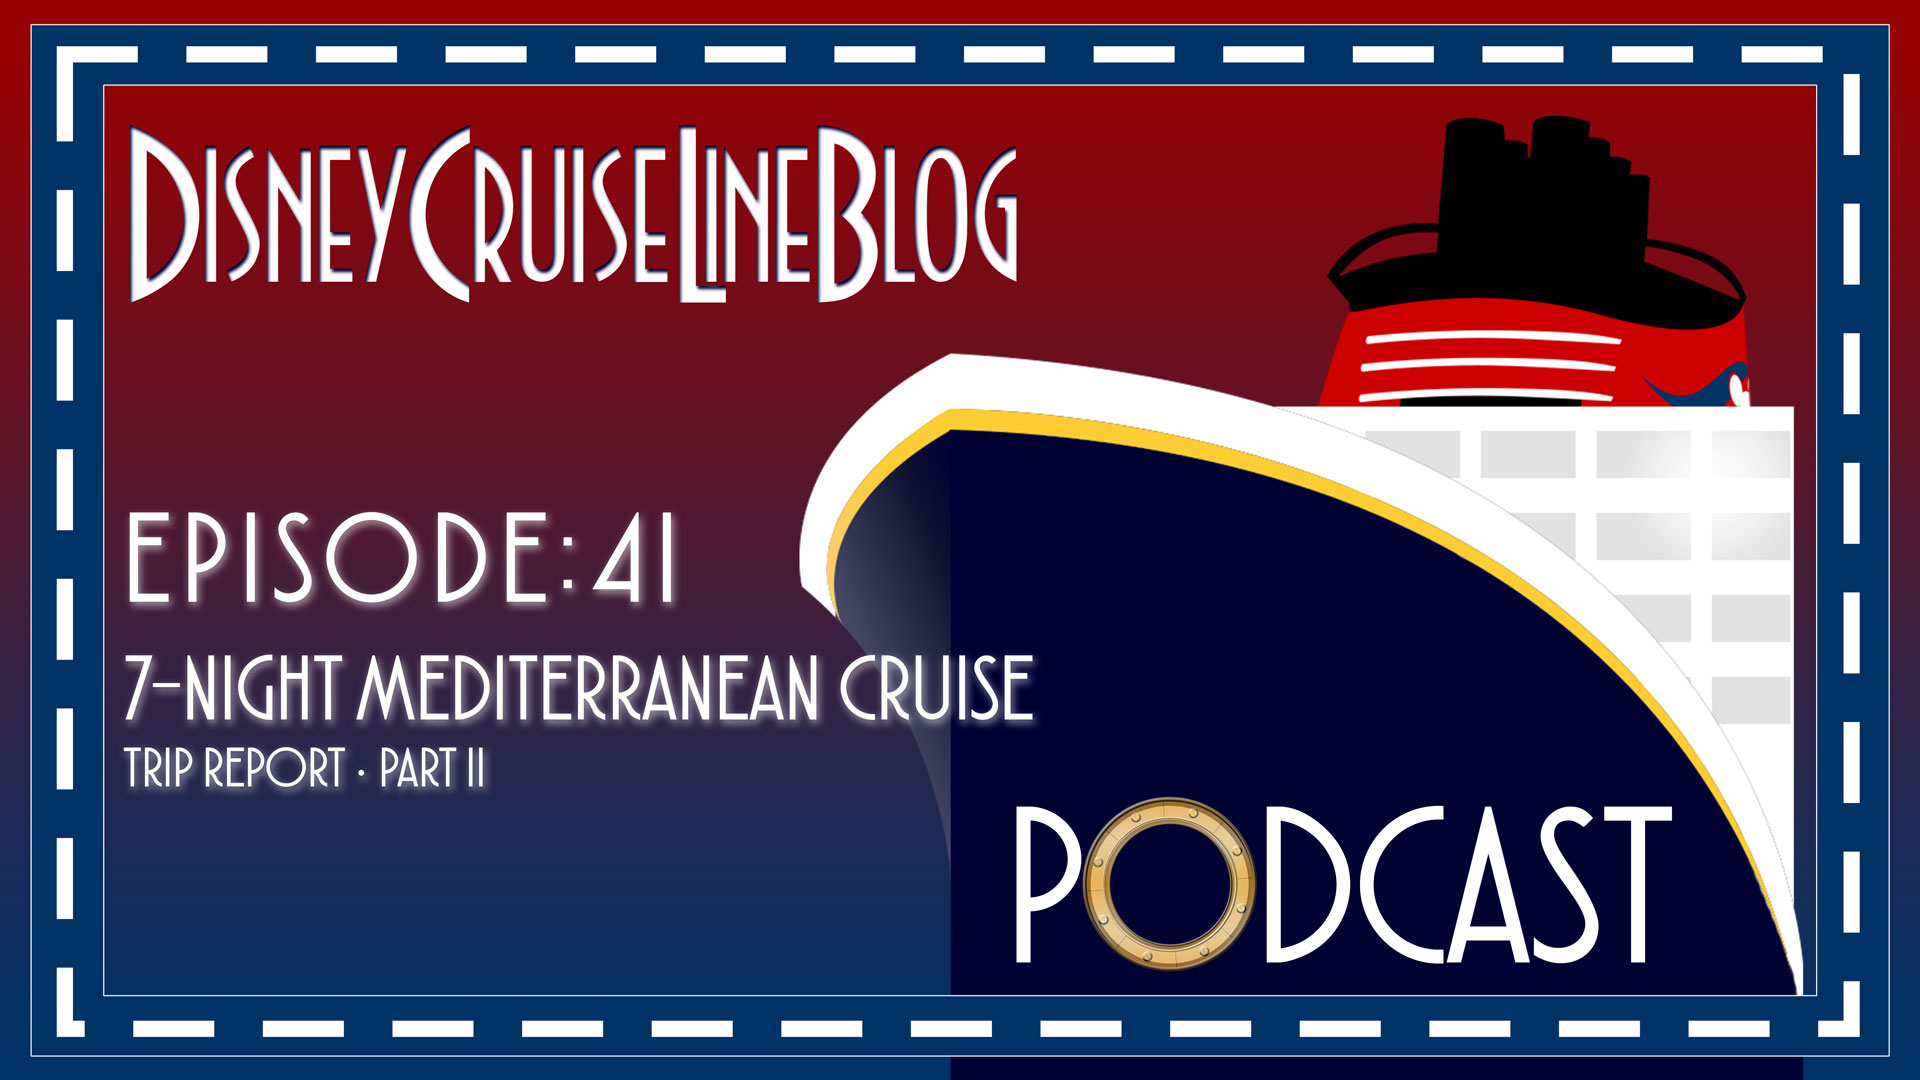 DCL Blog Podcast Episode 41 7night Mediterranean Trip Report Part 2